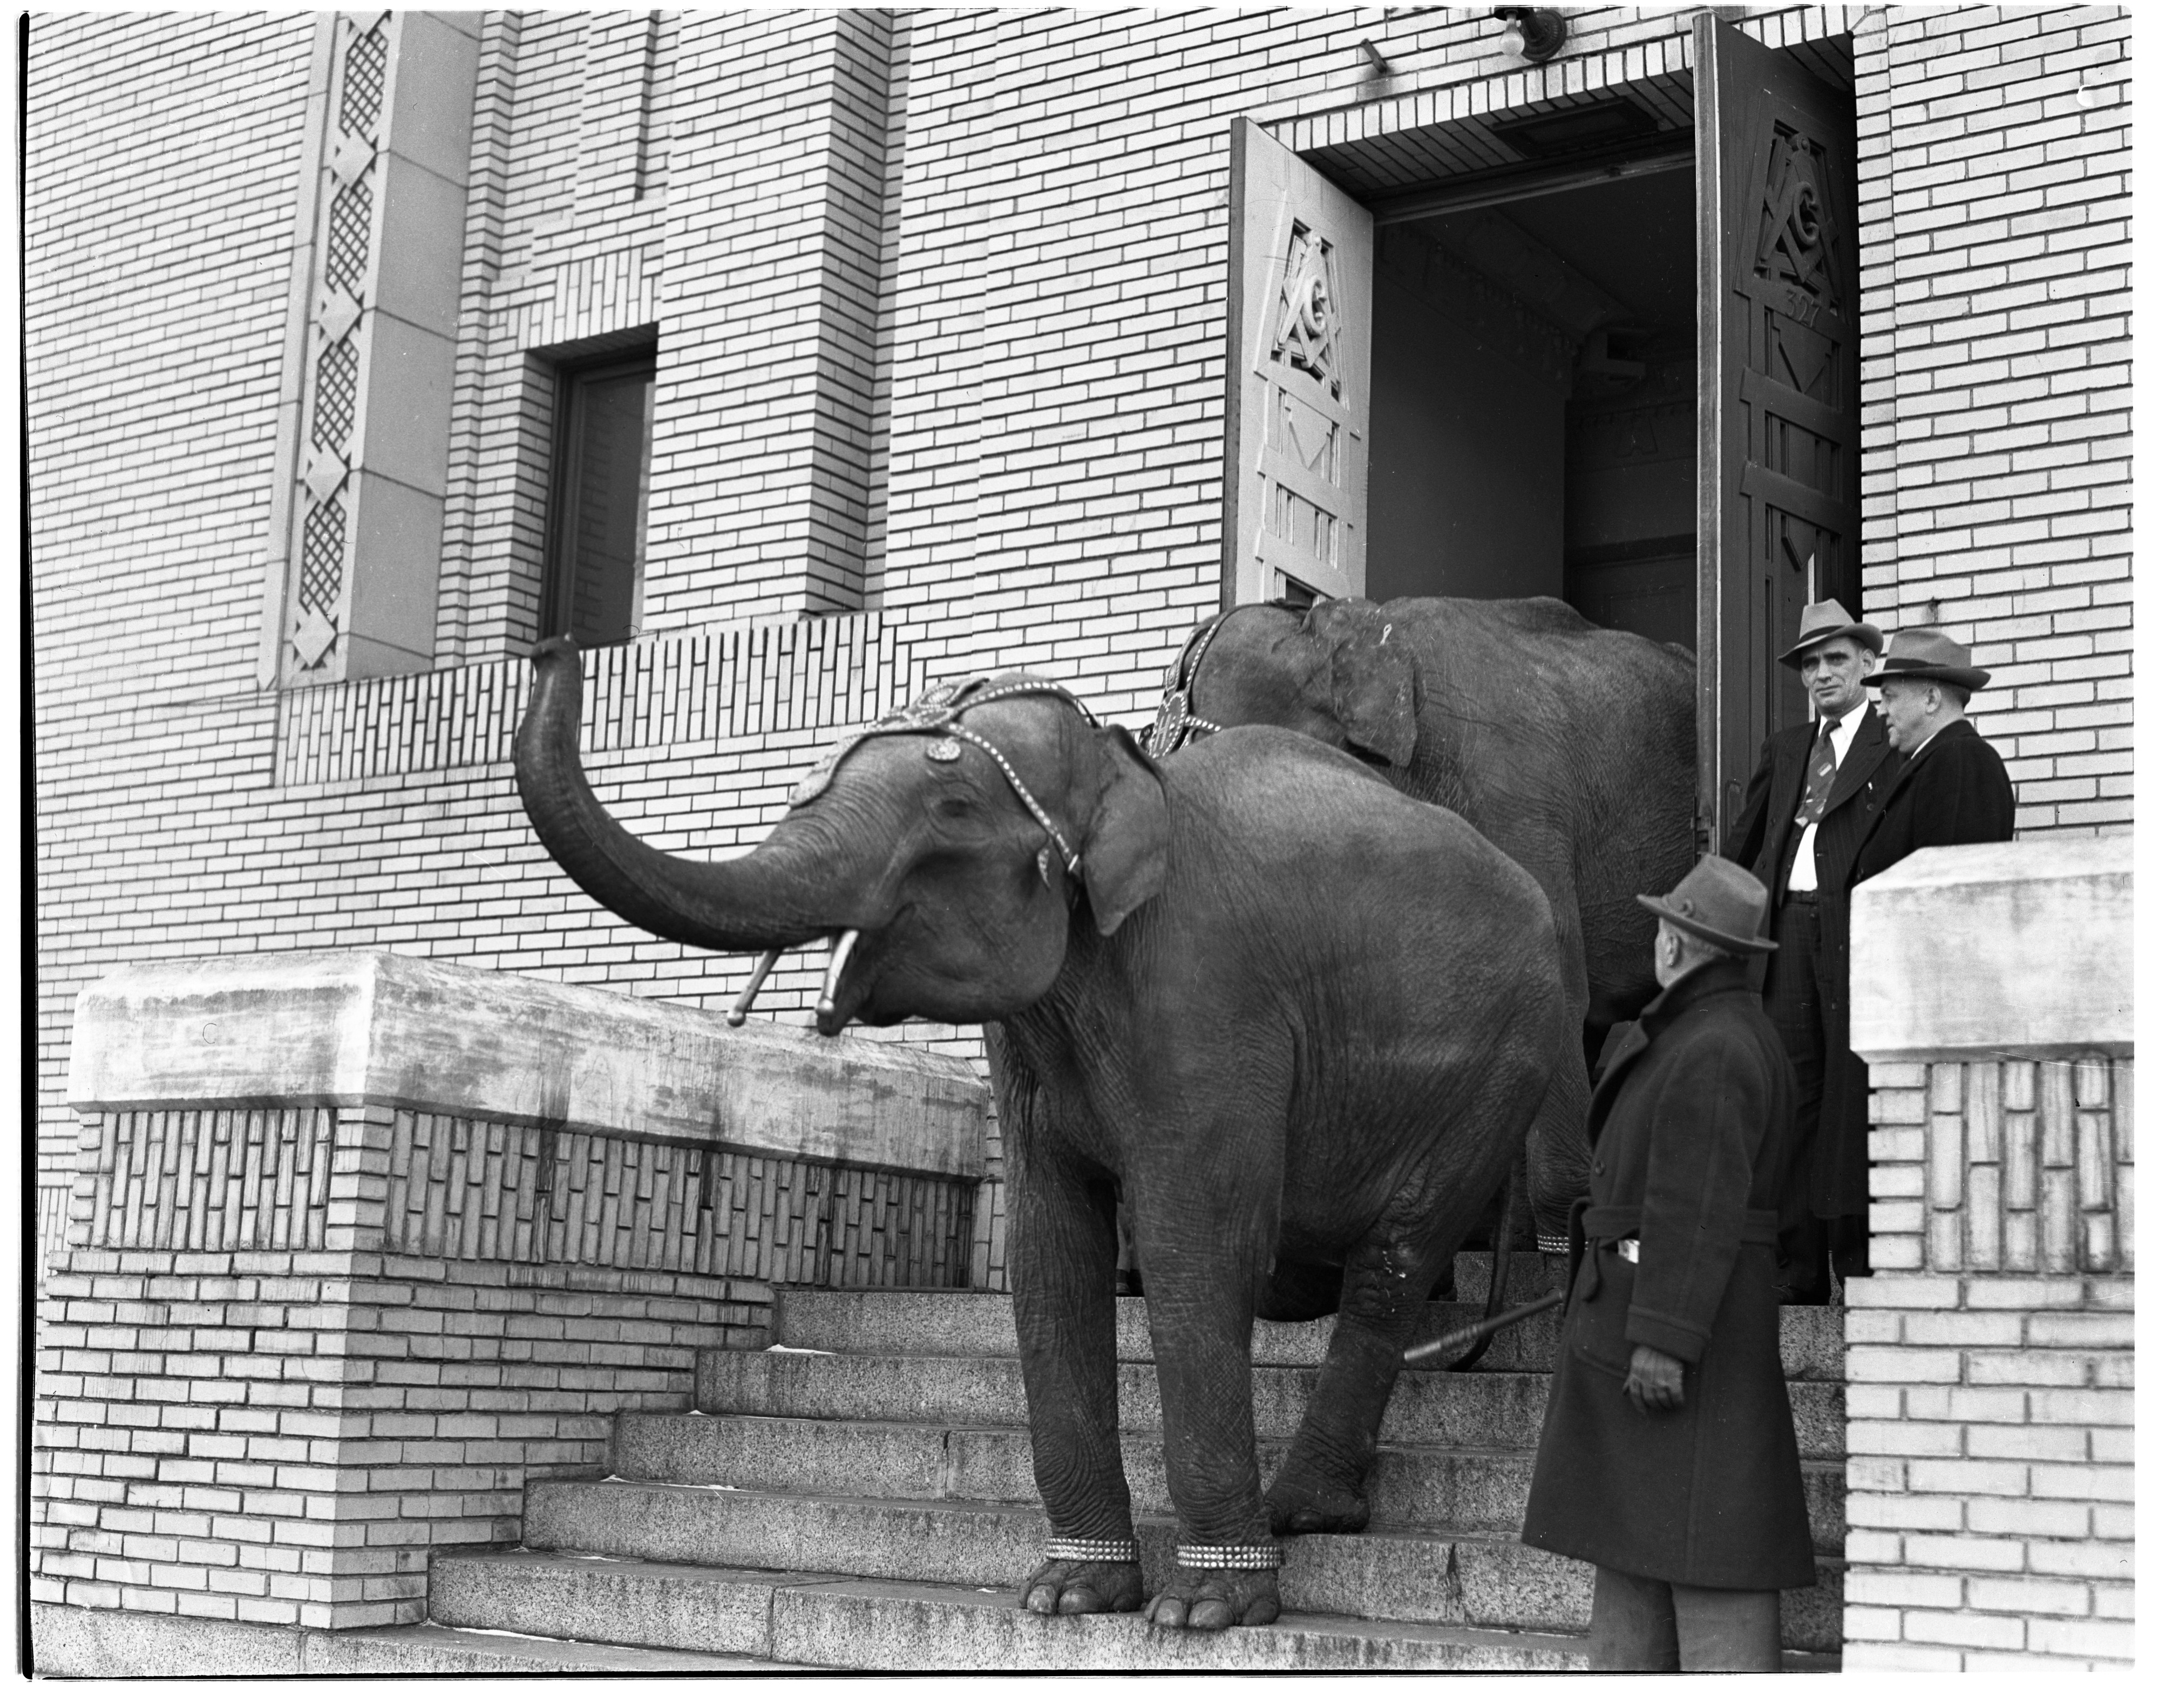 Elephants at the Masonic Temple on Fourth Ave, Grotto Circus, February 1940 image